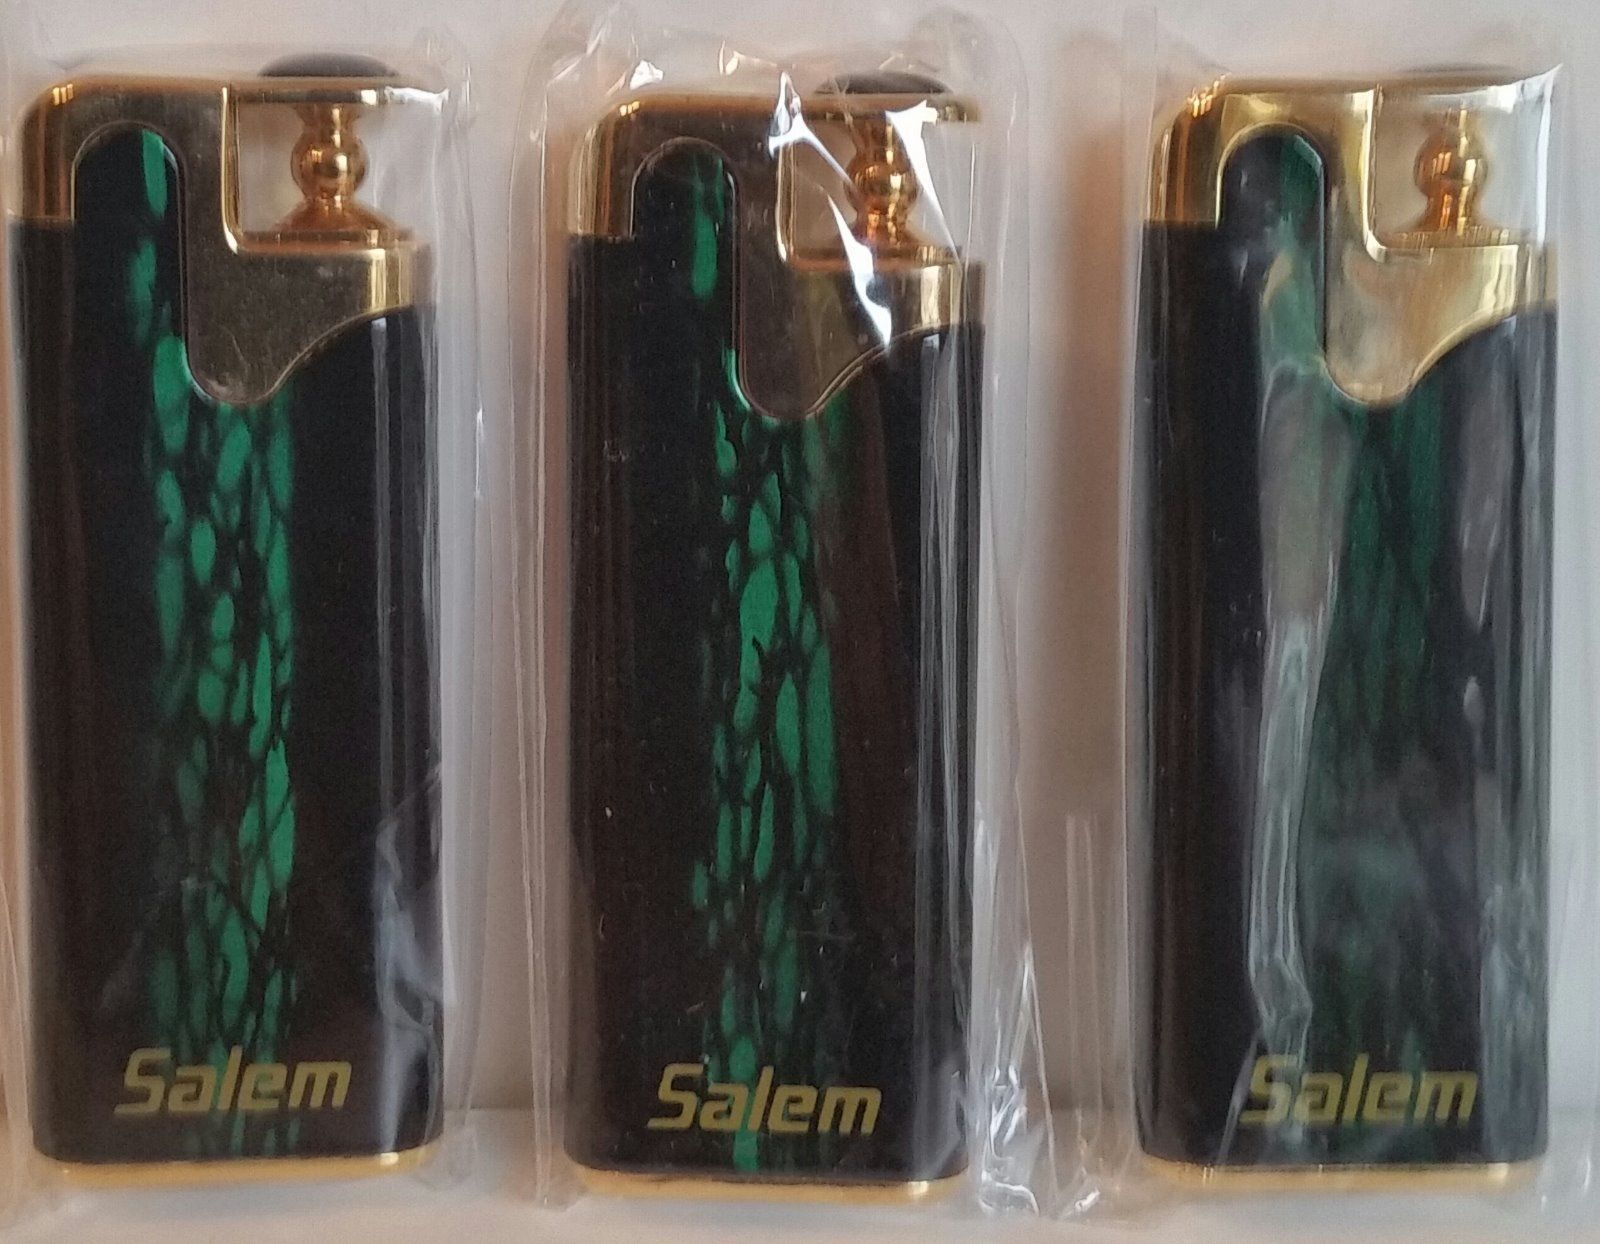 Refillable Salem Cigarette Butane Lighter Great Find! In package